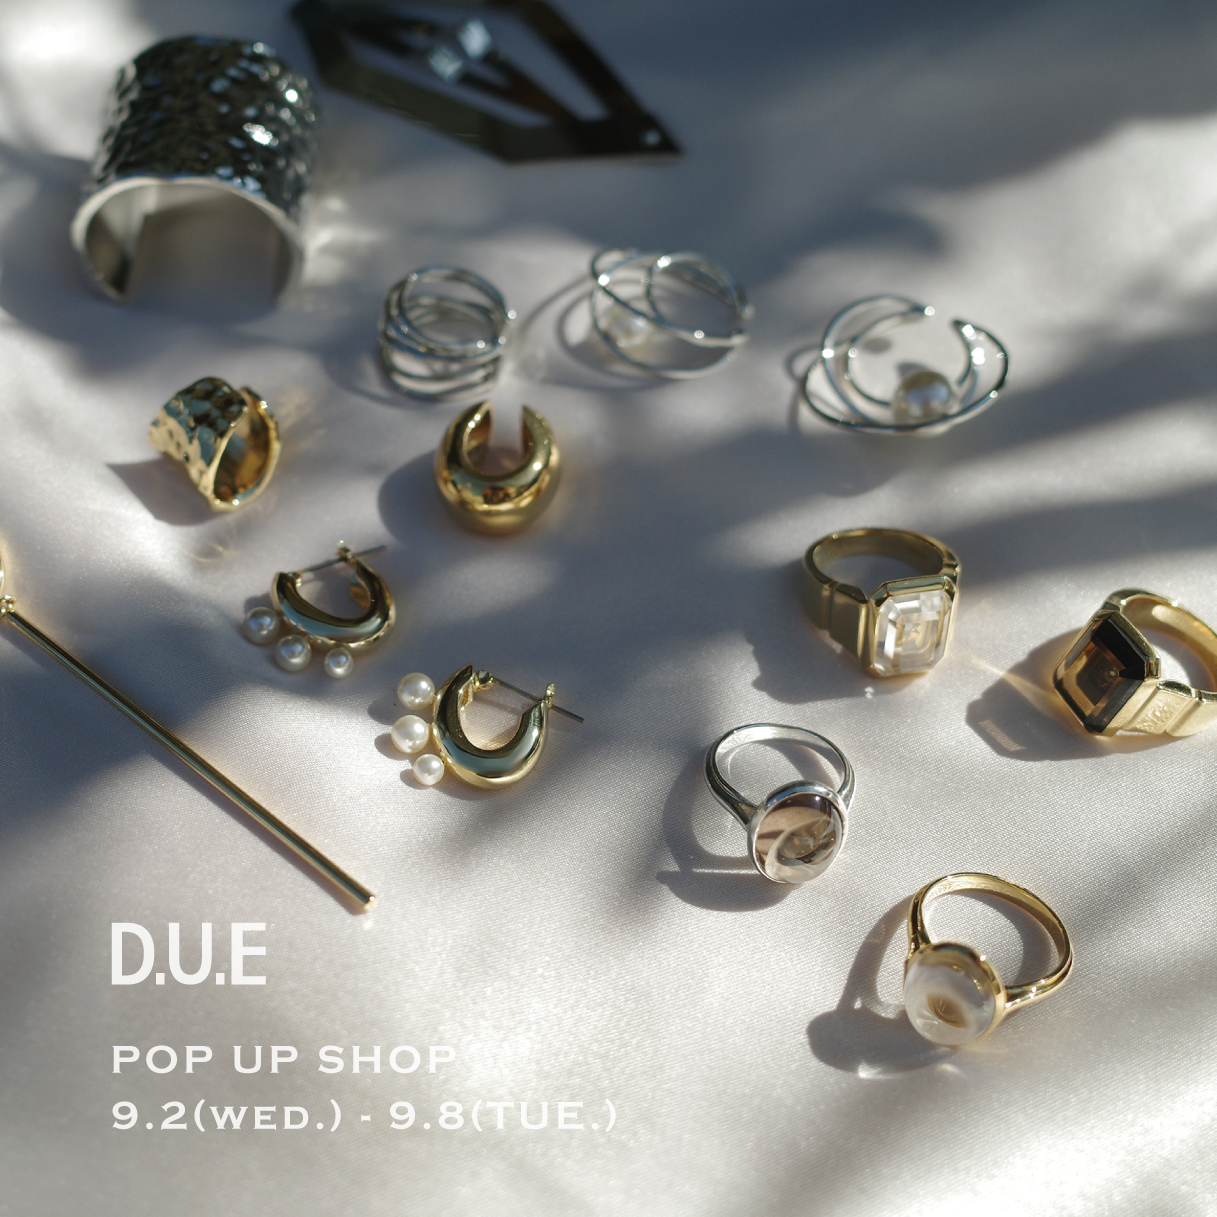 D.U.E_POP UP SHOP_福岡岩田屋